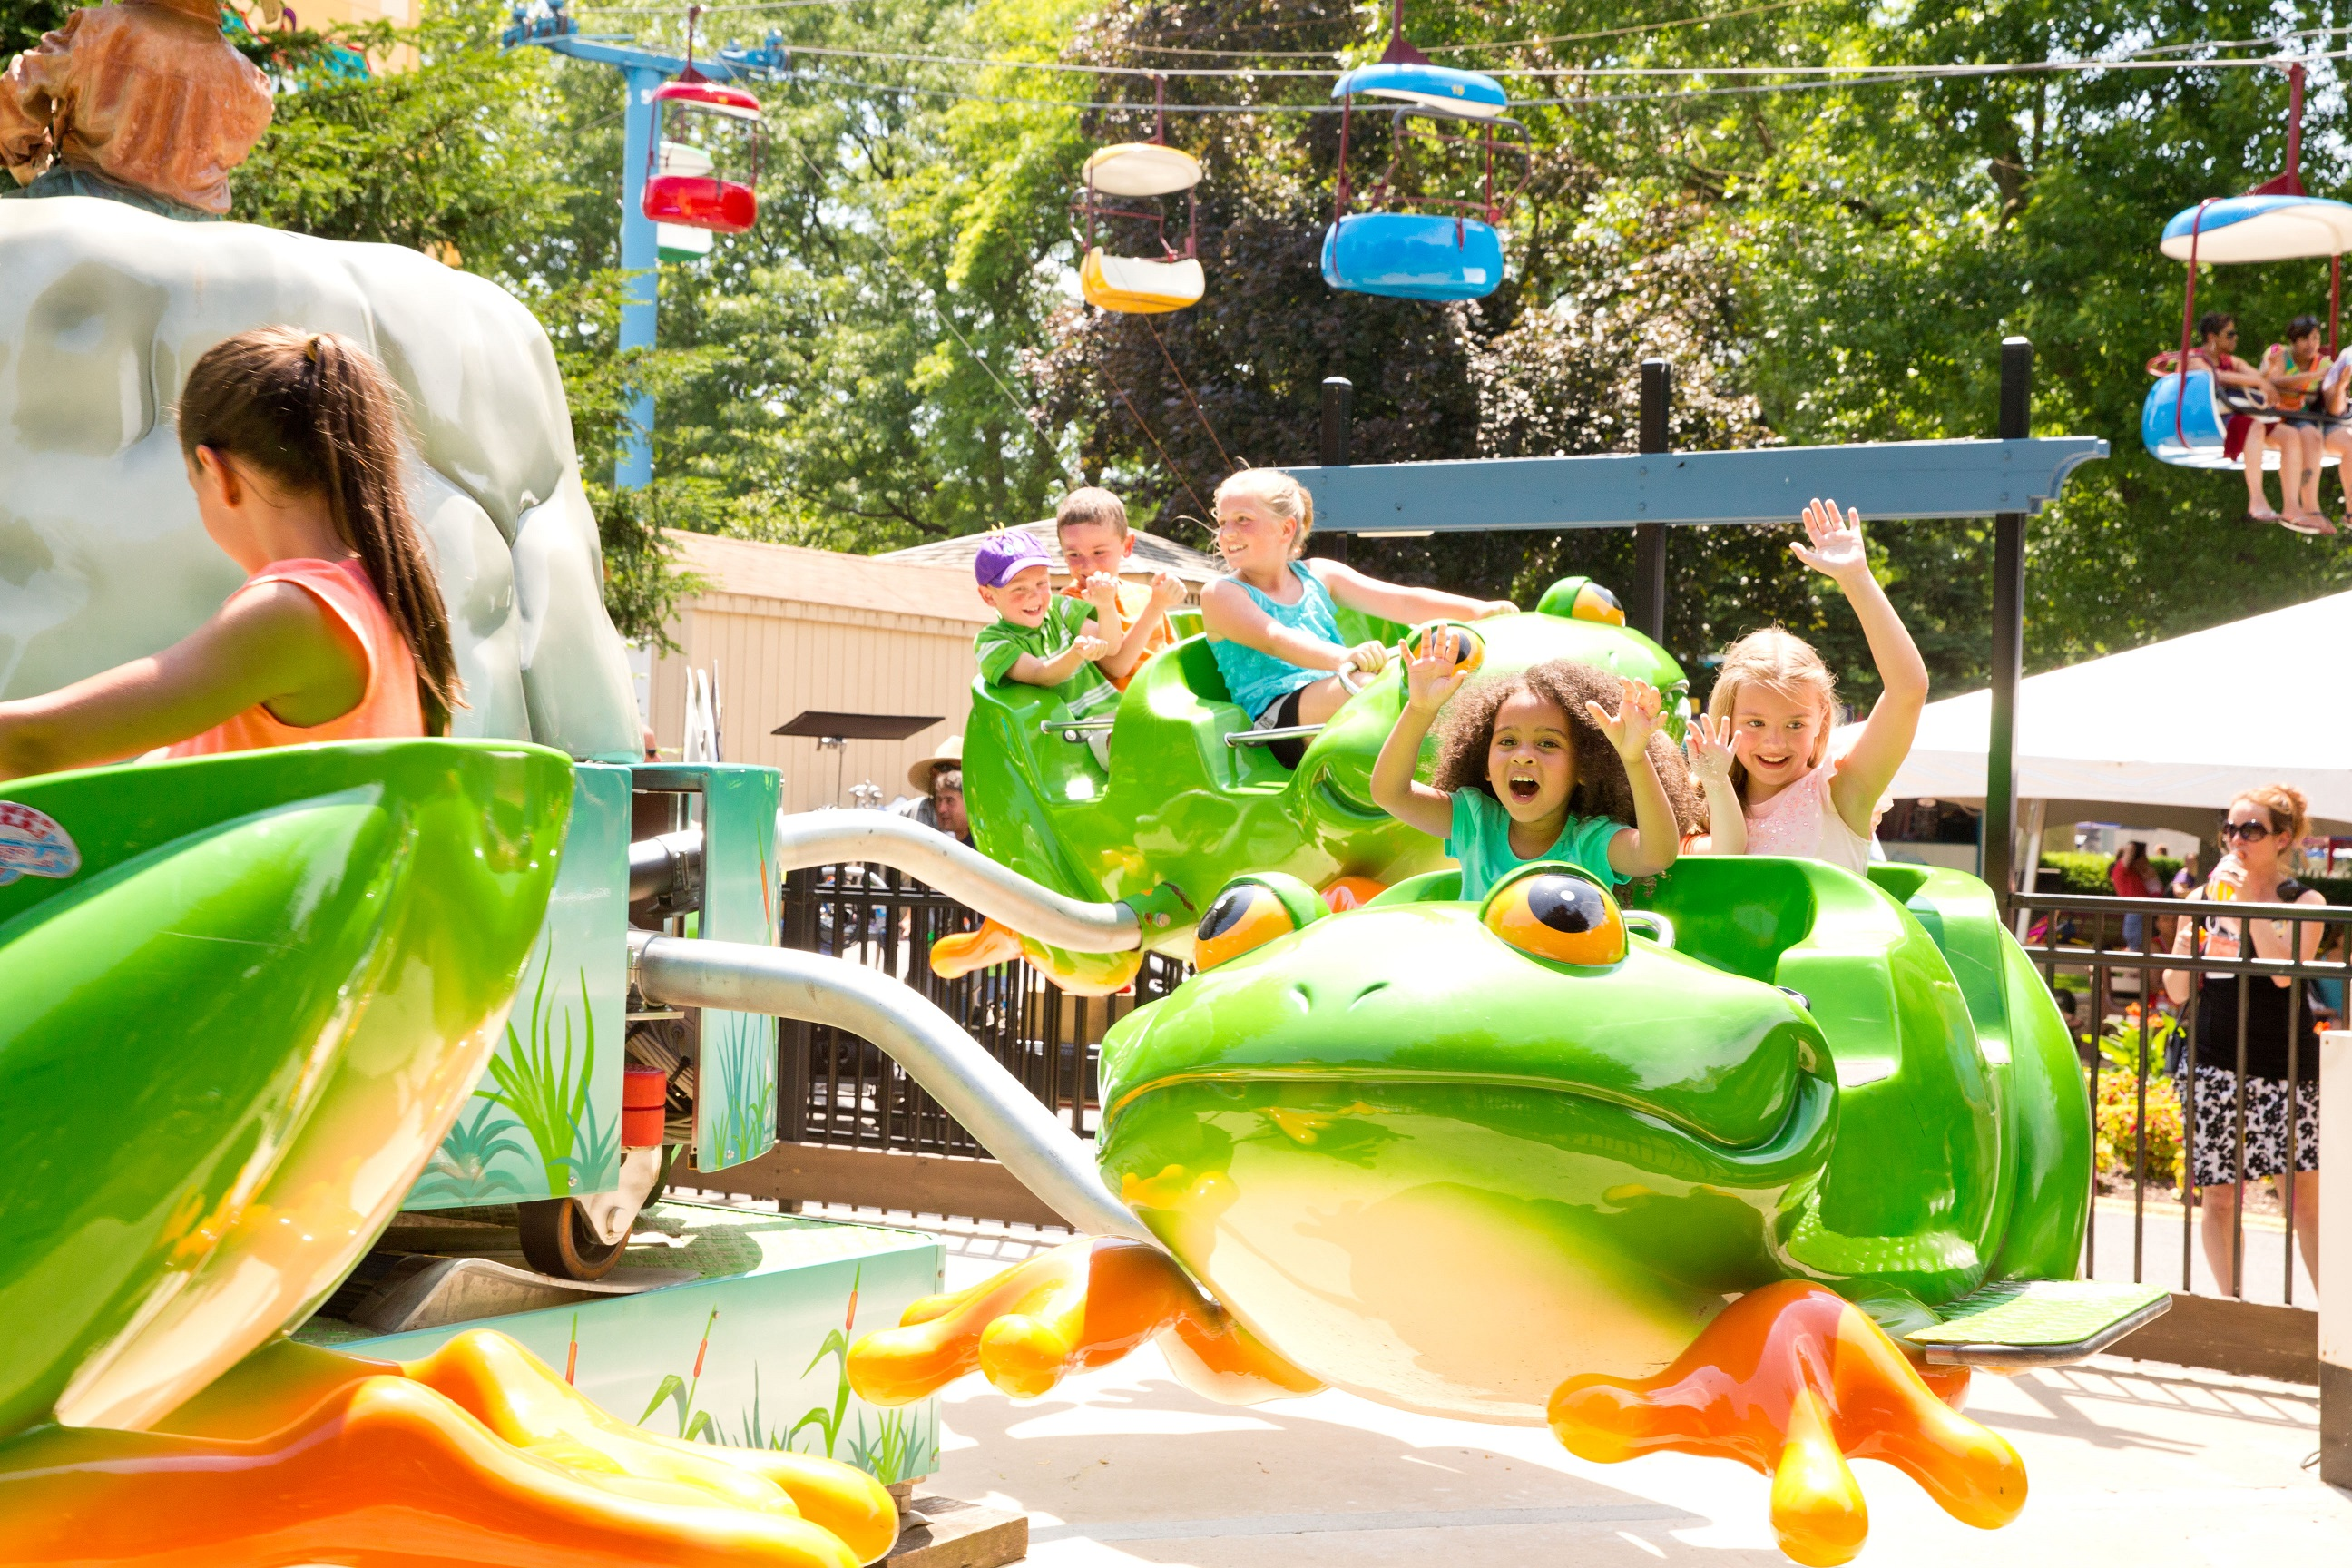 Children holding their hands in the air while riding attraction in frog-shaped cars.